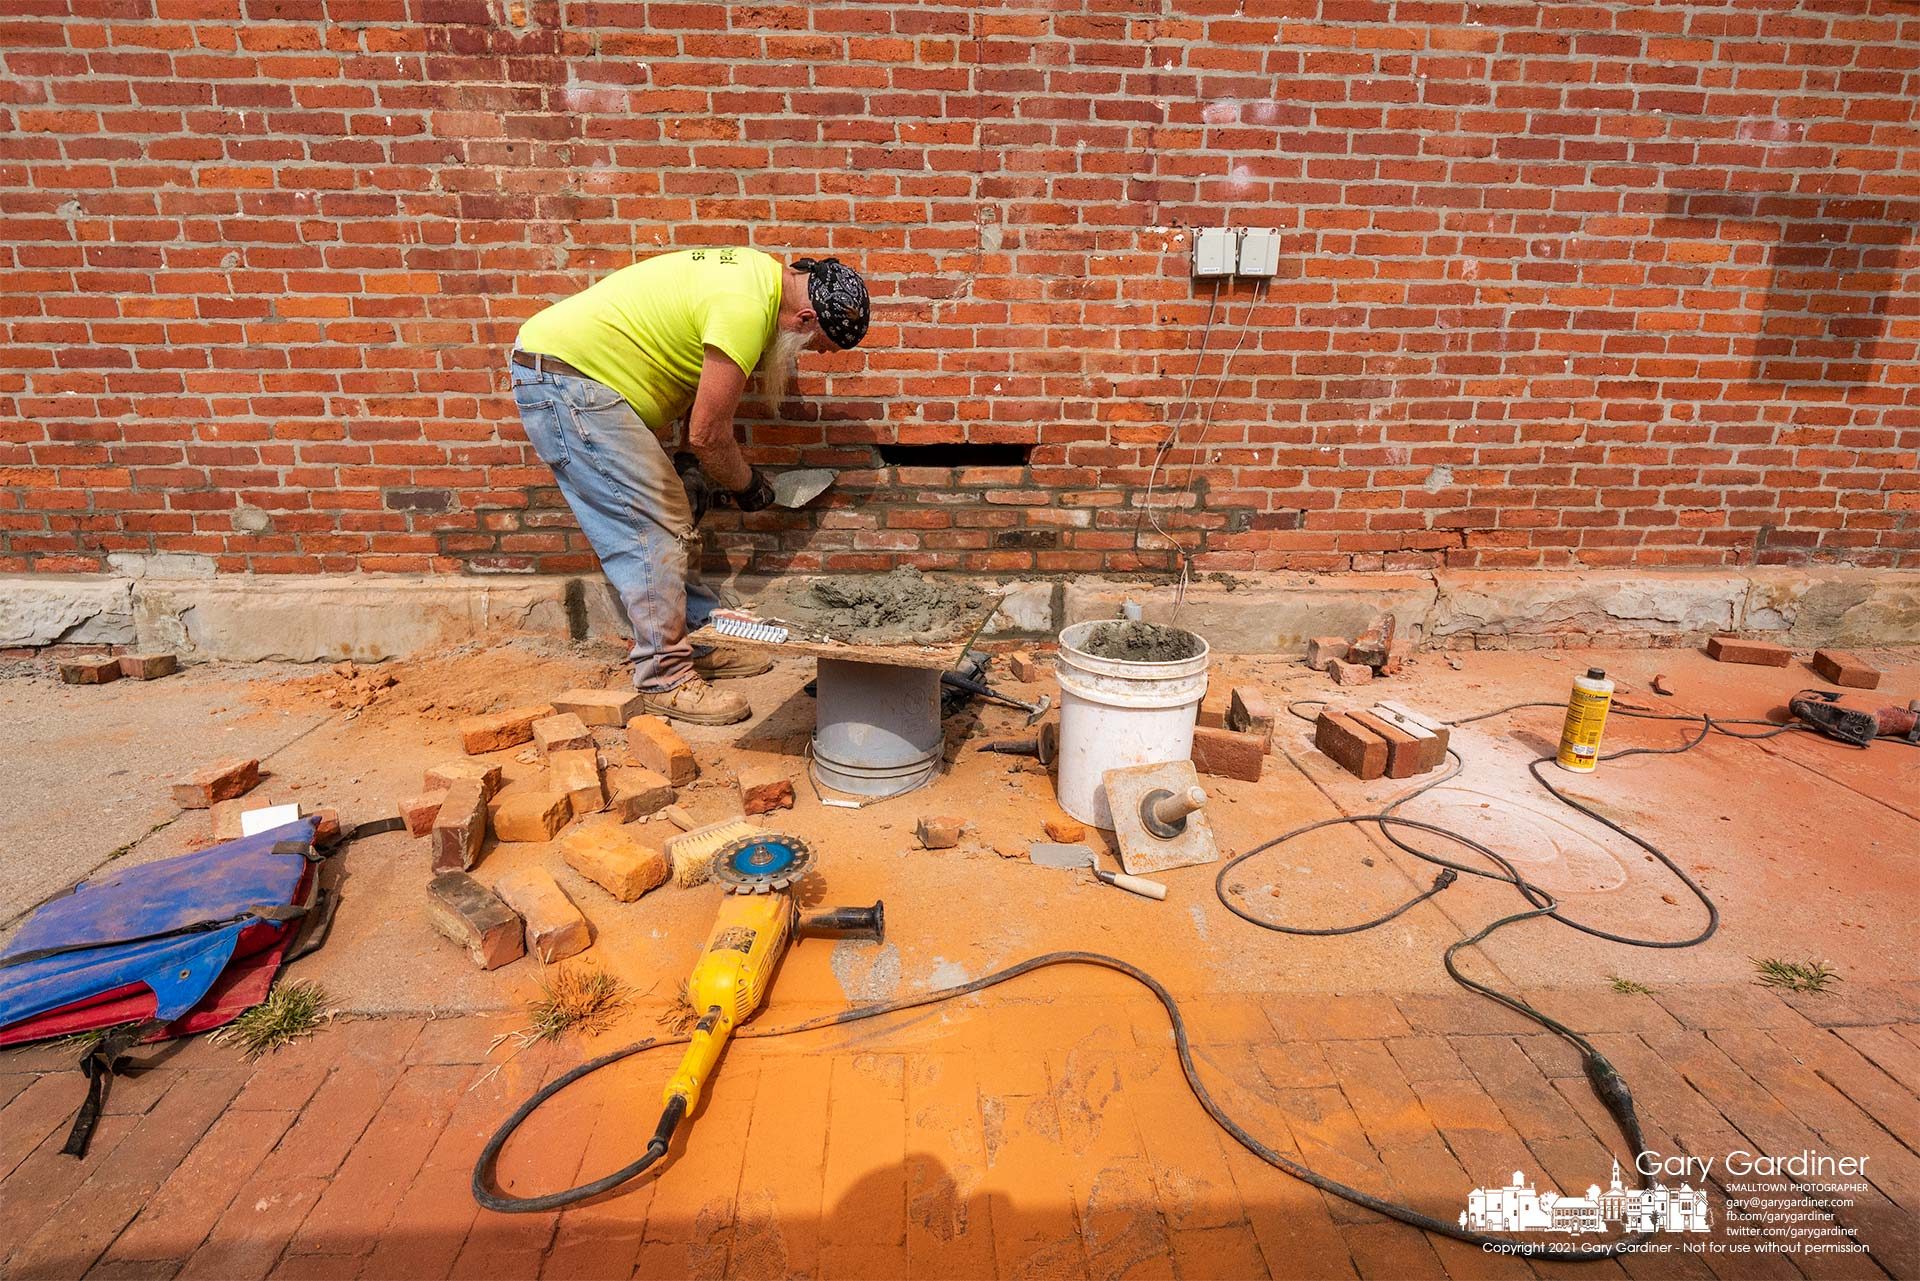 A brick mason replaces old brick and tuck-points the mortar joints between others to refresh the exterior of a section of the Graeter's Ice Cream store in Uptown Westerville. My Final Photo for Sept. 28, 2021.